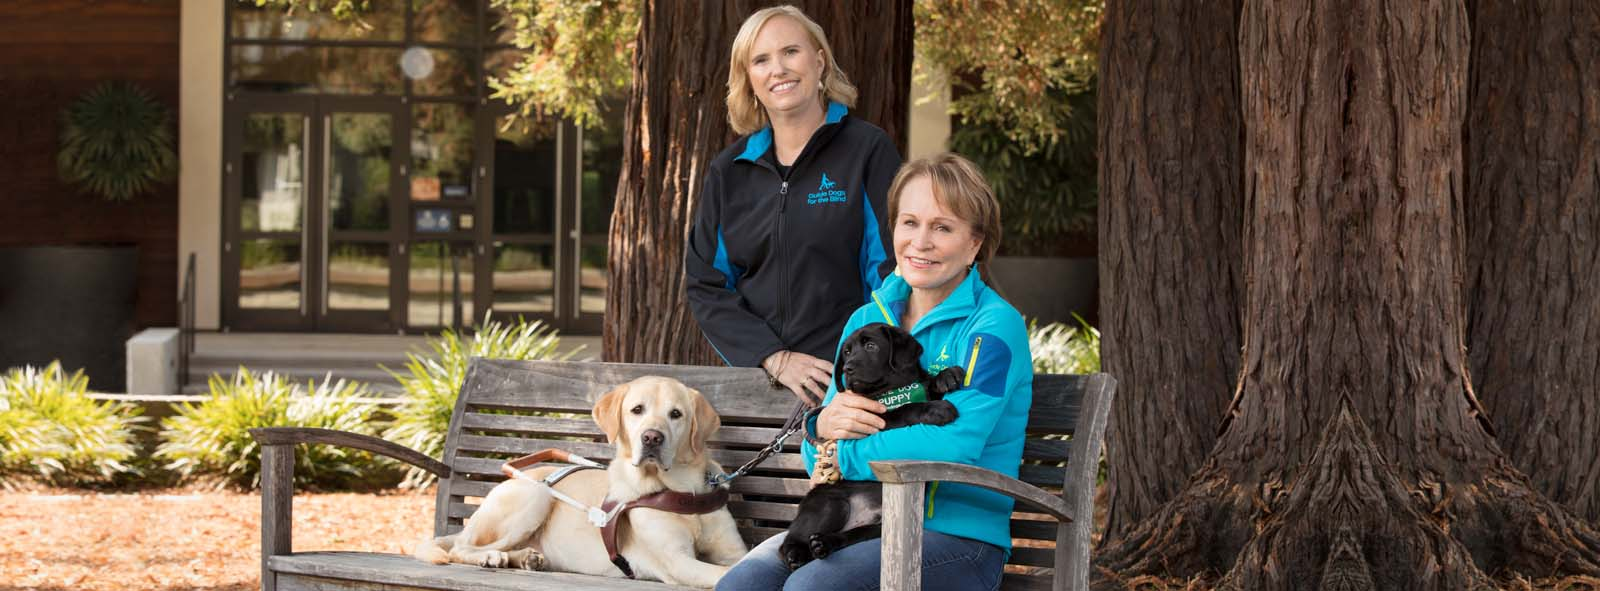 Select to access video of First Republic Nonprofits client(s) Guide Dogs for the Blind